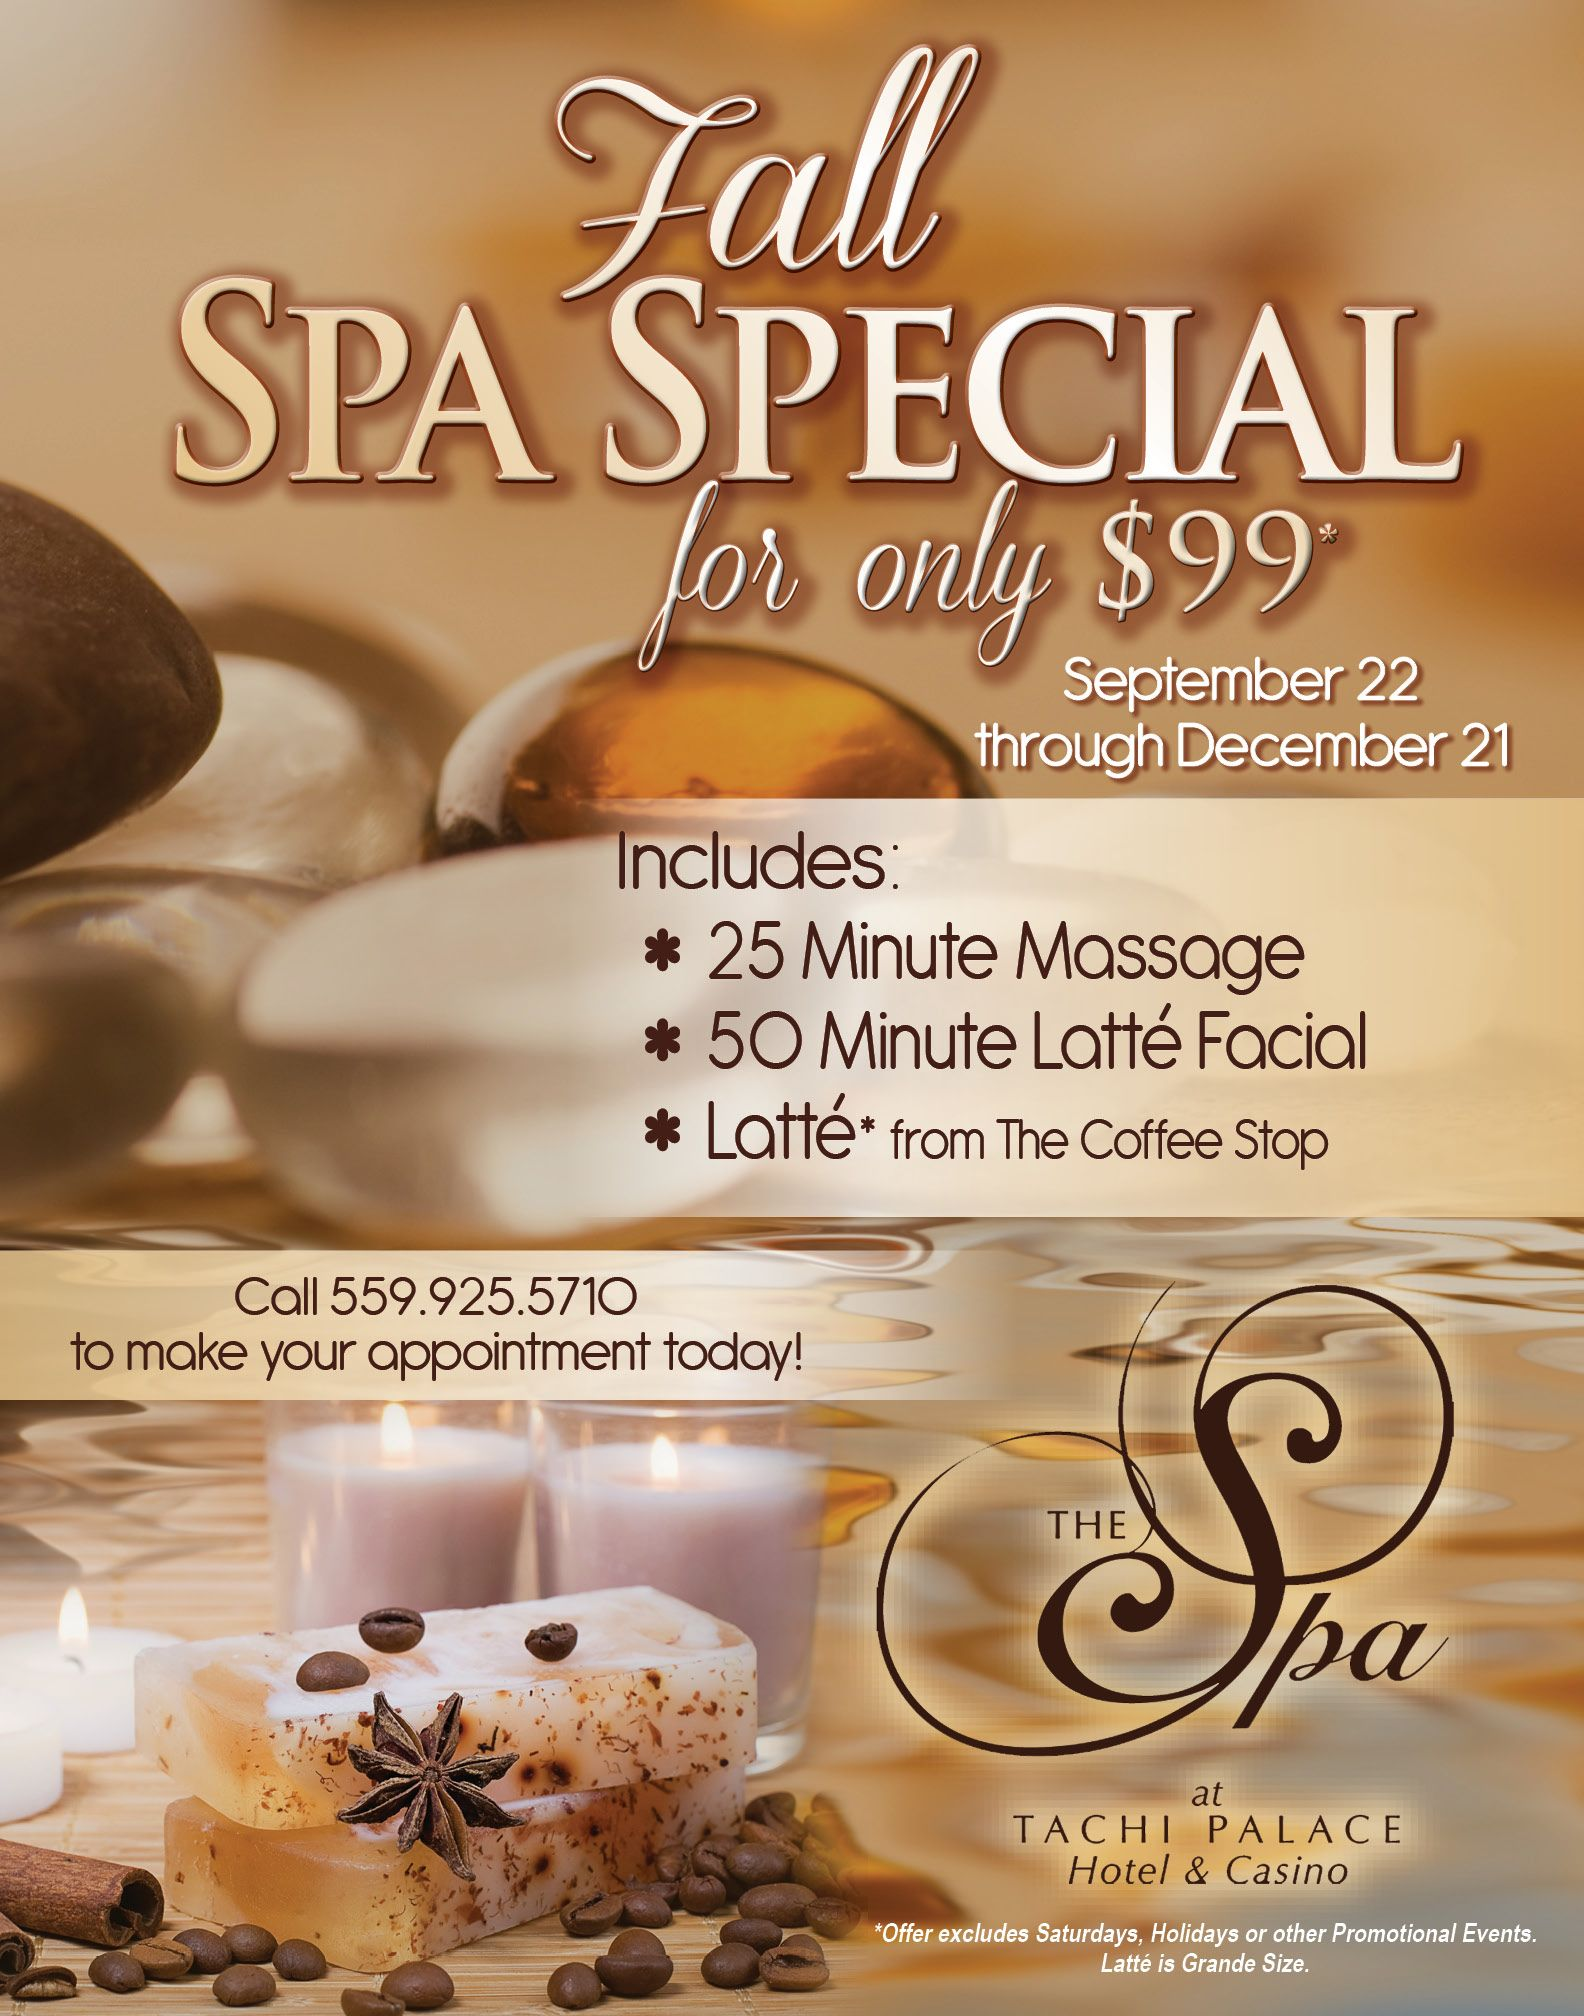 Tachis 2012 fall spa special spa pinterest spa specials tachis 2012 fall spa special fandeluxe Image collections